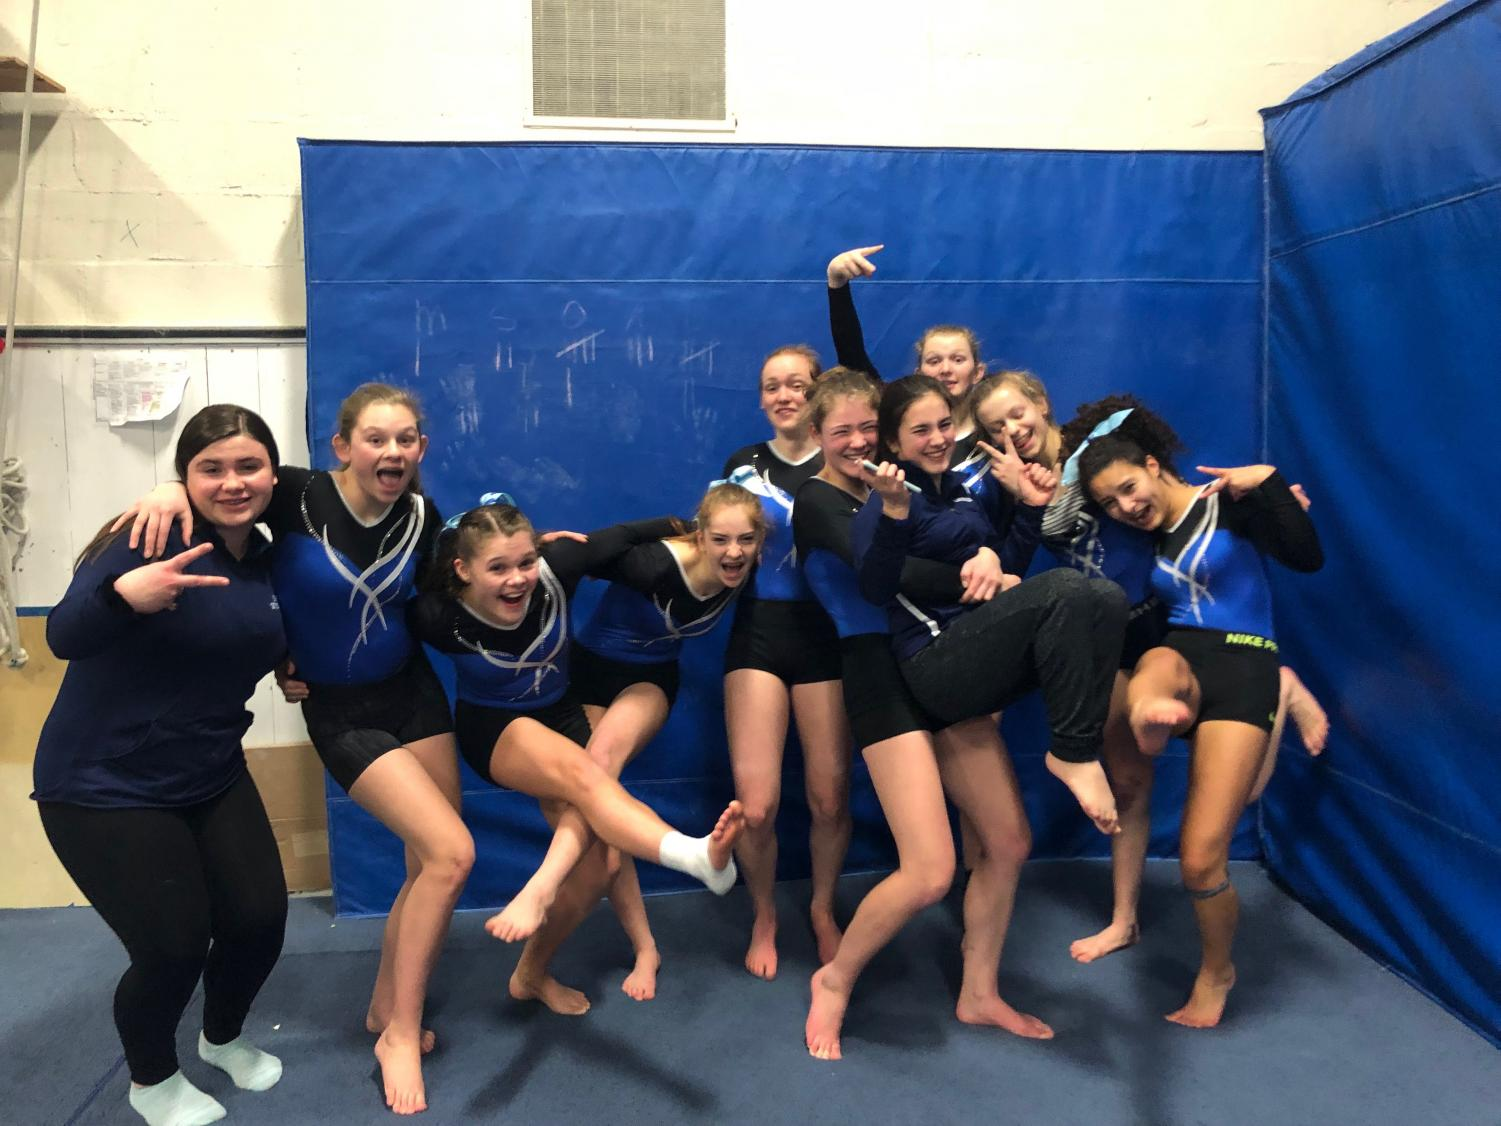 The team all posing together before a home meet. Courtesy of Abby Benack